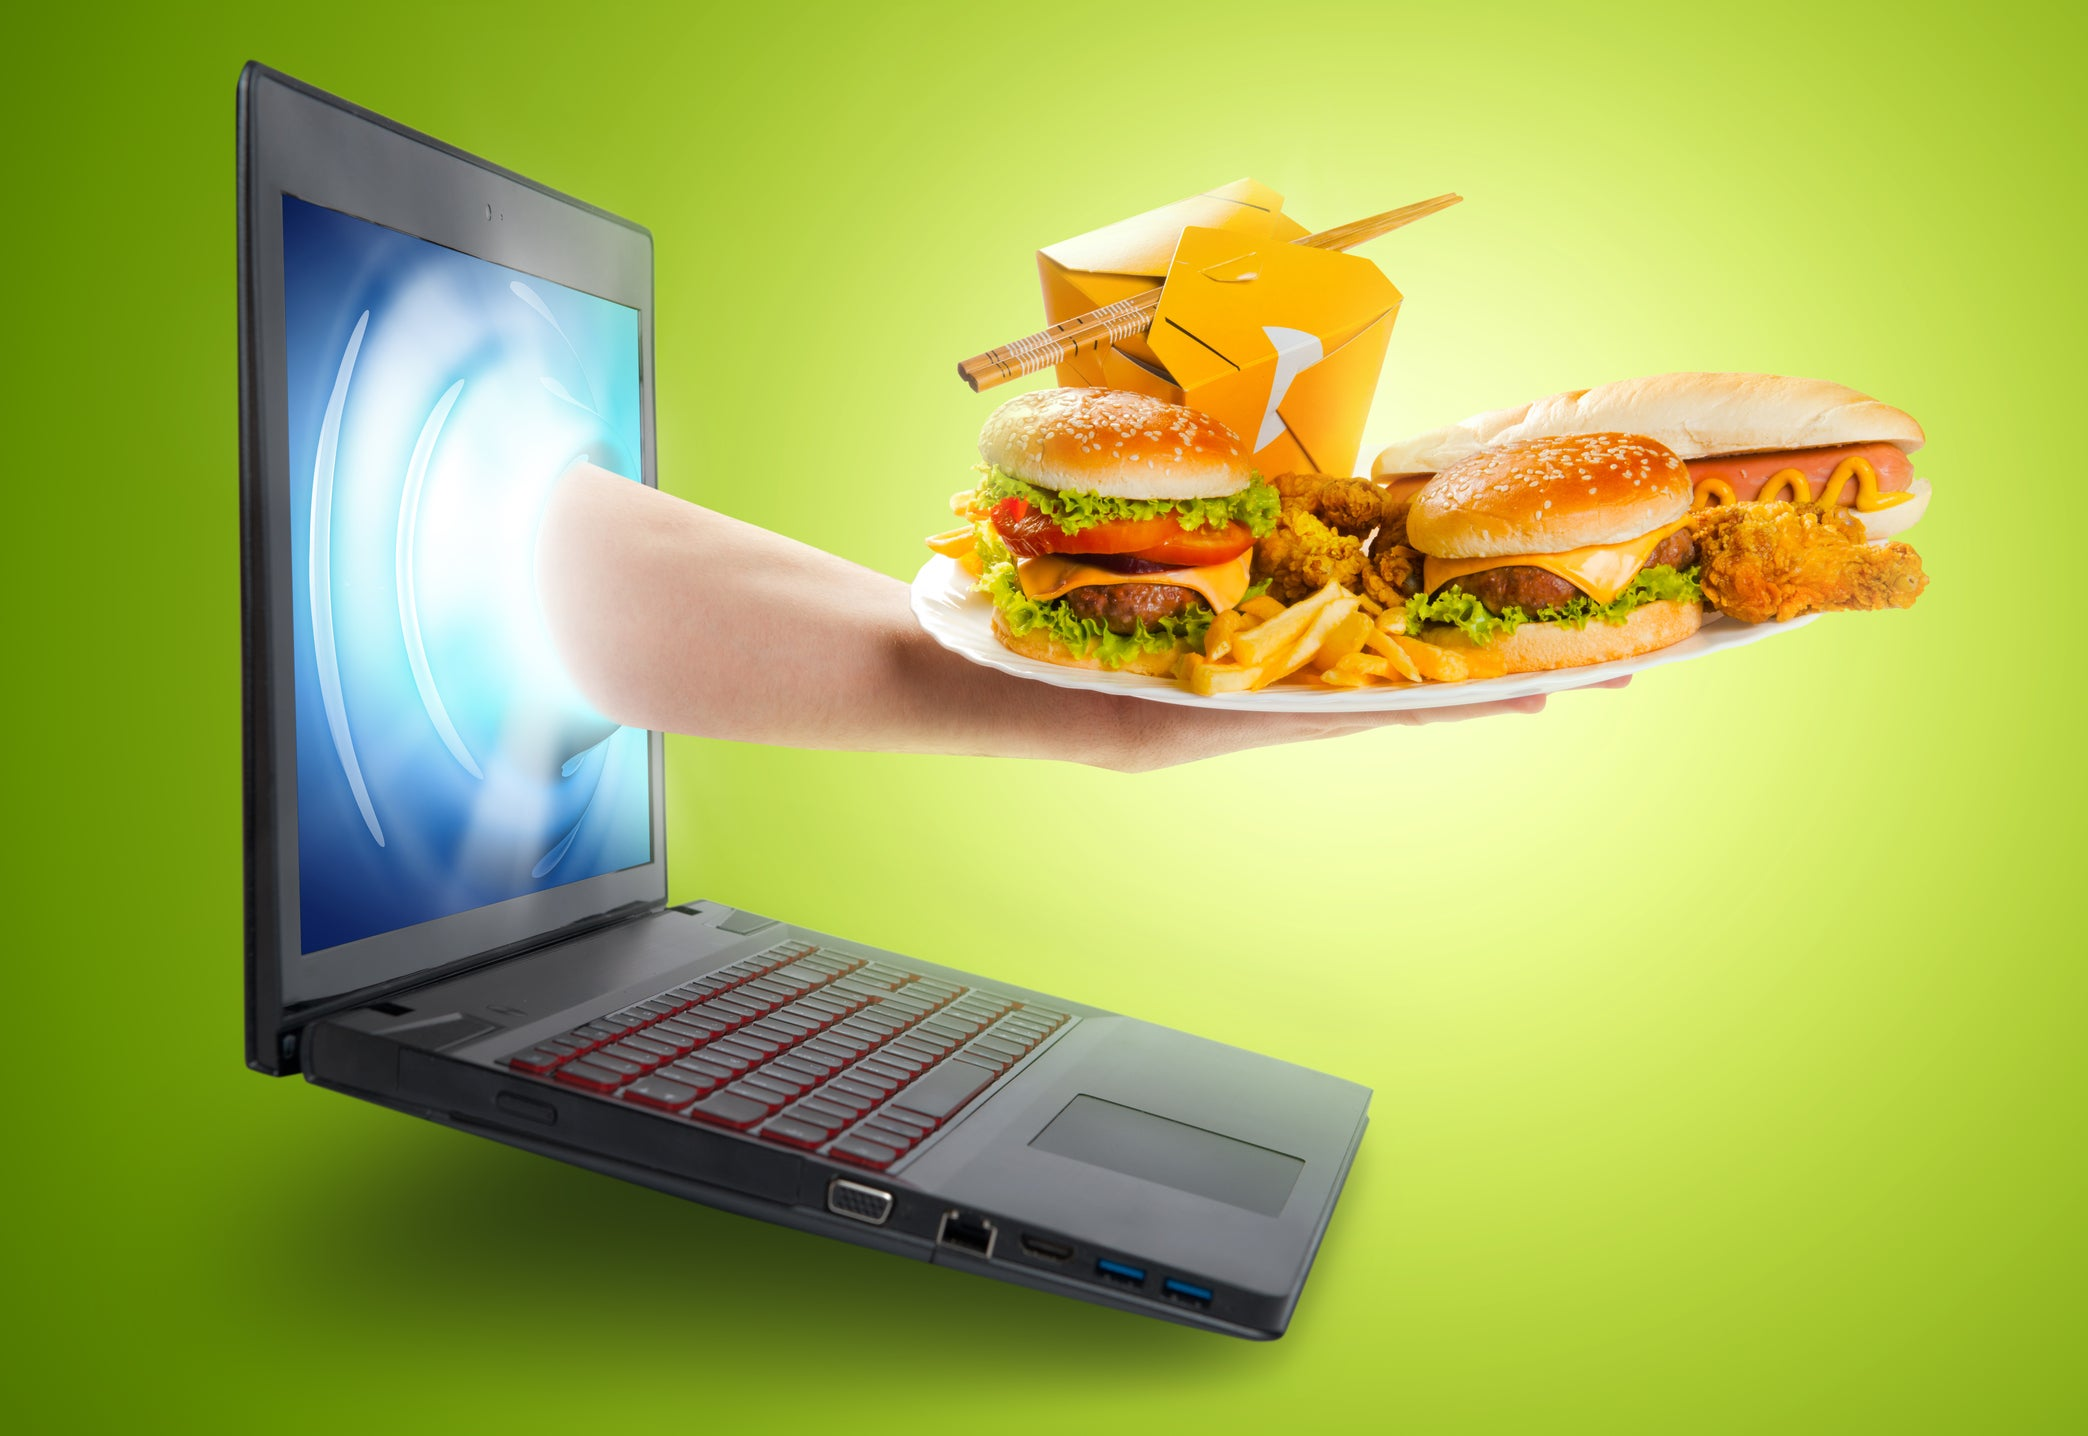 Hand reaching through laptop screen holding plate of fast food